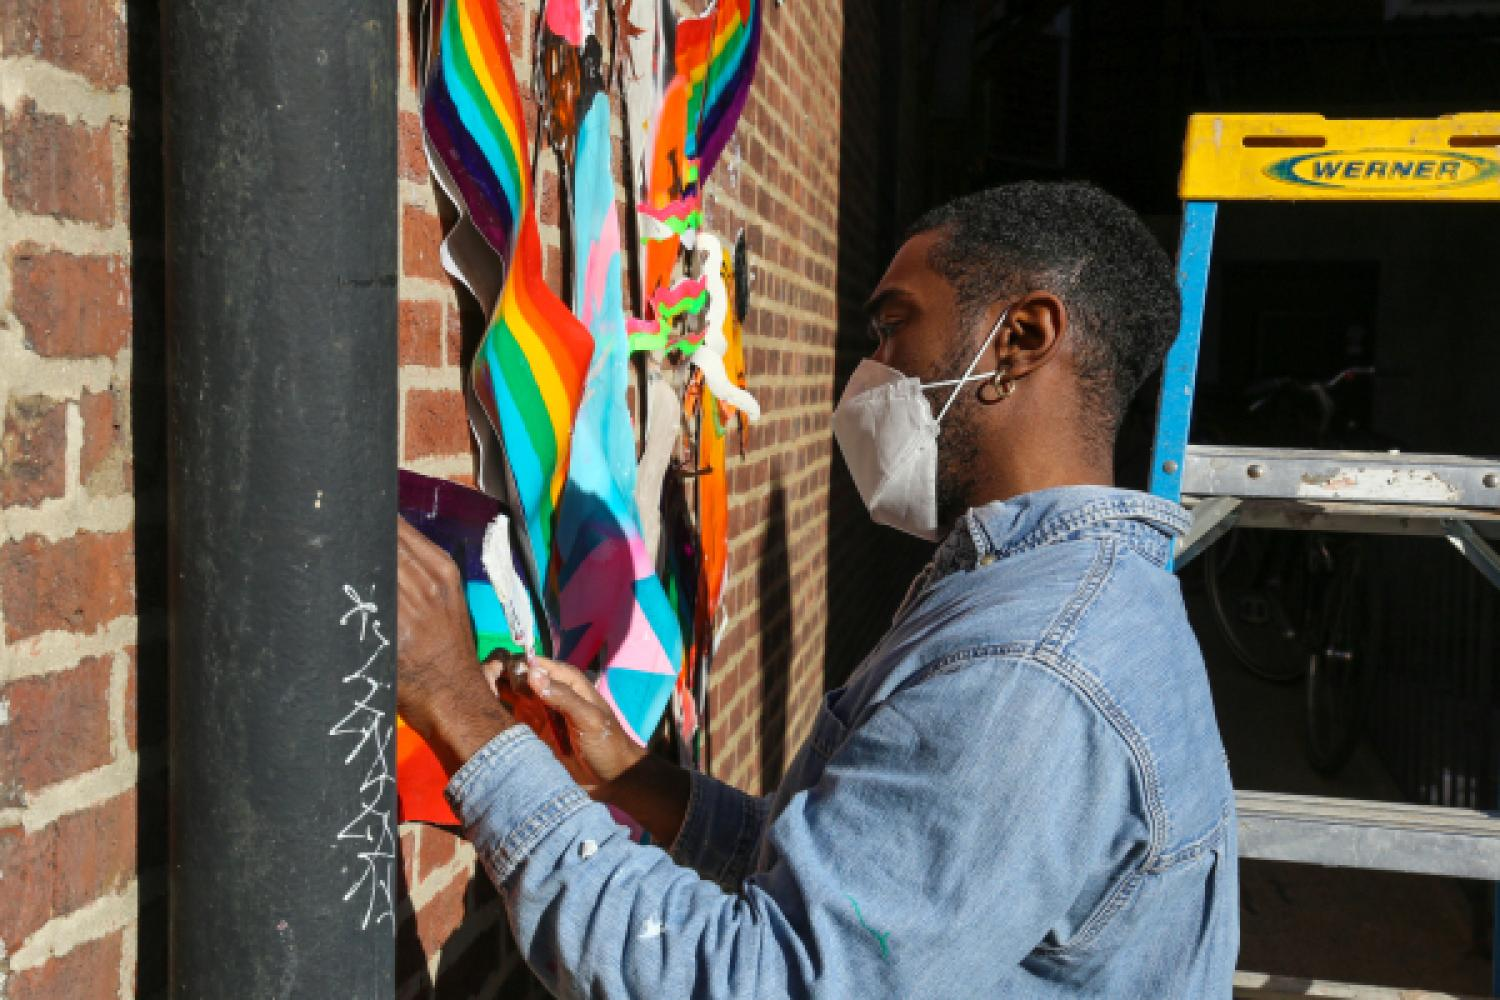 Artist Khari Johnson-Ricks pastes his mural to the side of The Attic Youth Center brick wall. Khari foregrounds a tall ladder and is weaing a denim chore coat and white facemask. The mural is dynamic and rainbow-colored against the brick.